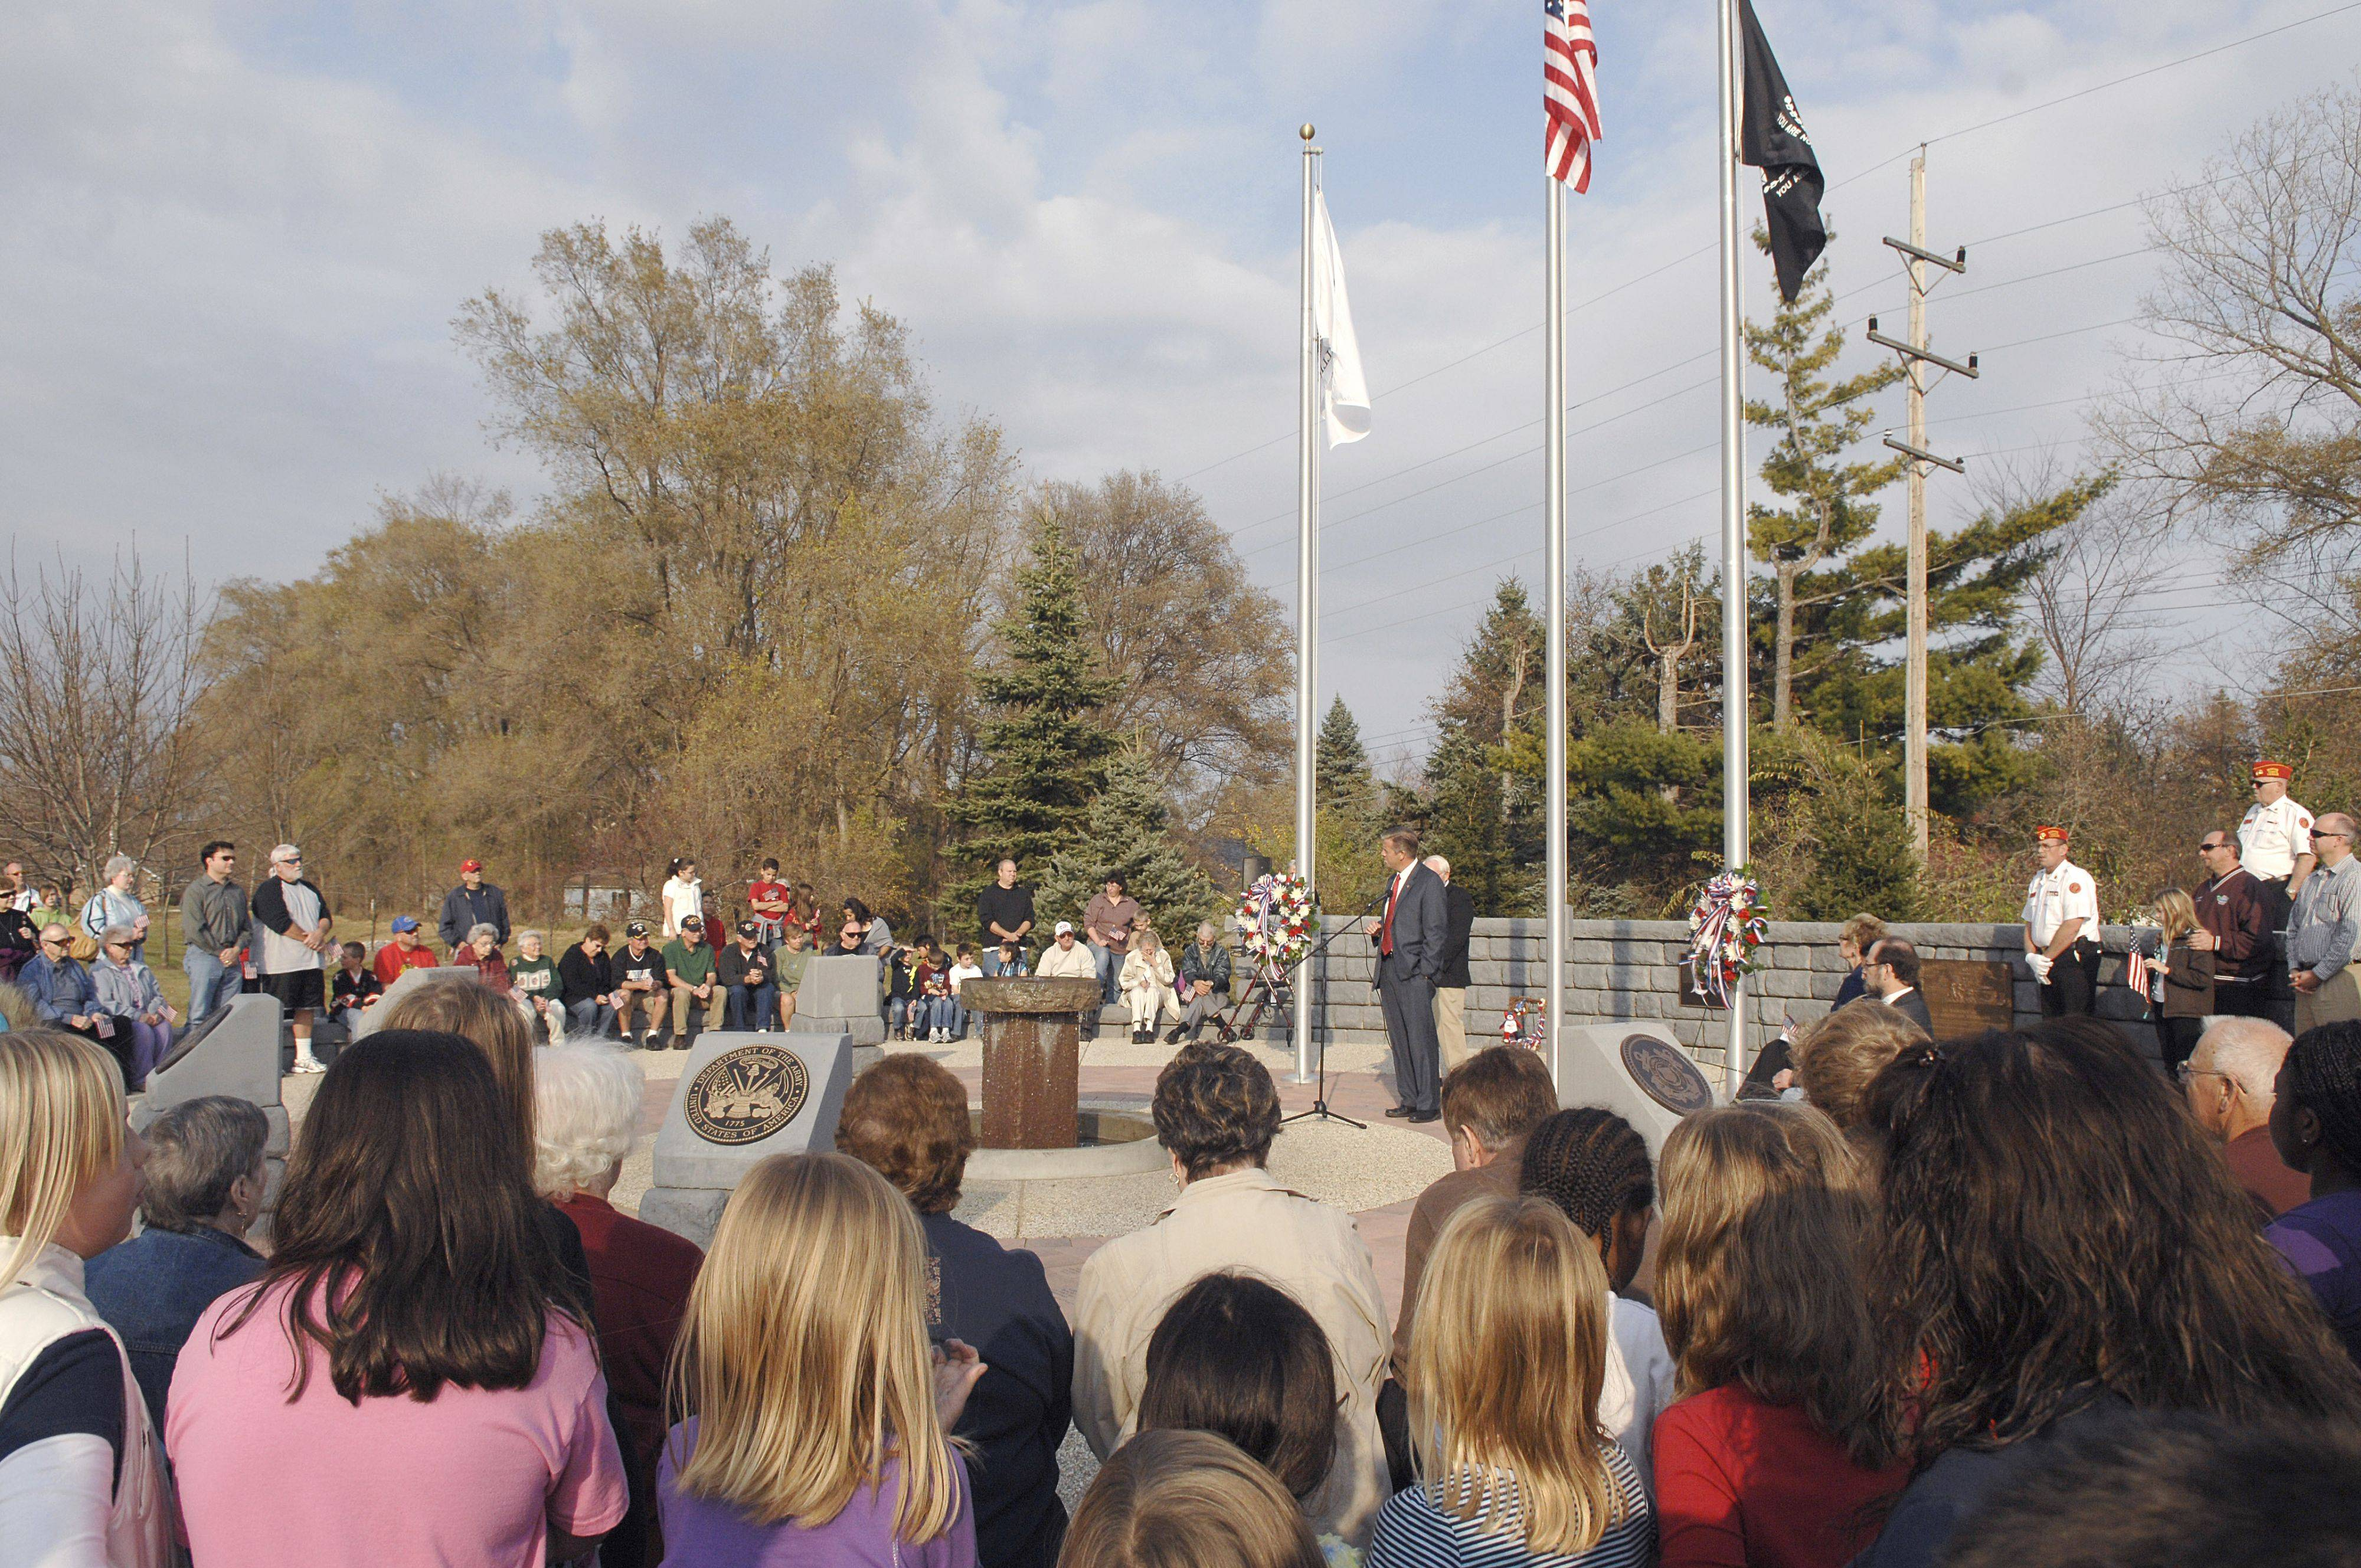 Laura Stoecker/lstoecker@dailyherald.comMany were in attendance for the Veterans Day ceremony in North Aurora on Thursday, November 11.